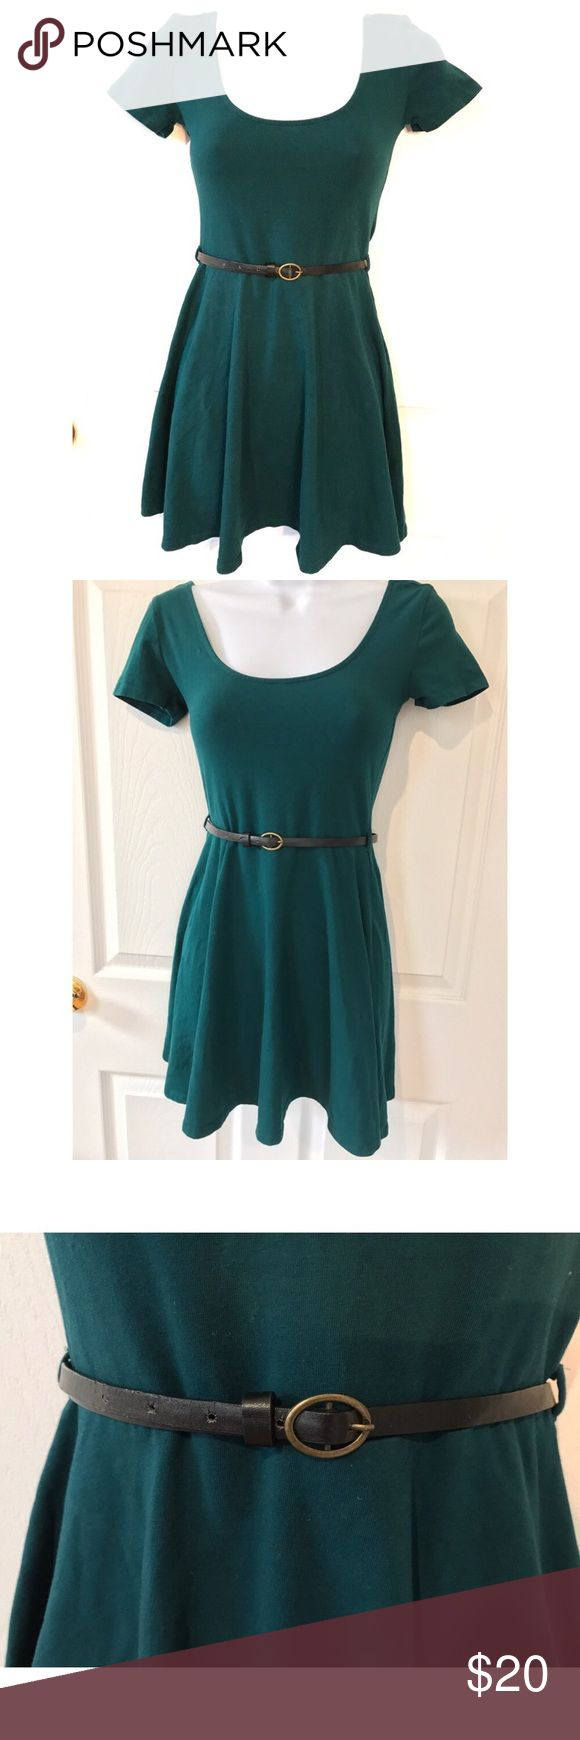 NWOT Forever 21 sundress Adorable green skater style sundress complete with a classic faux leather belt. Short sleeve and perfect for the warm weather. Throw on tights, leggings, over the knee socks, or a cute leather jacket on the cooler days to complete your look. Forever 21 Dresses